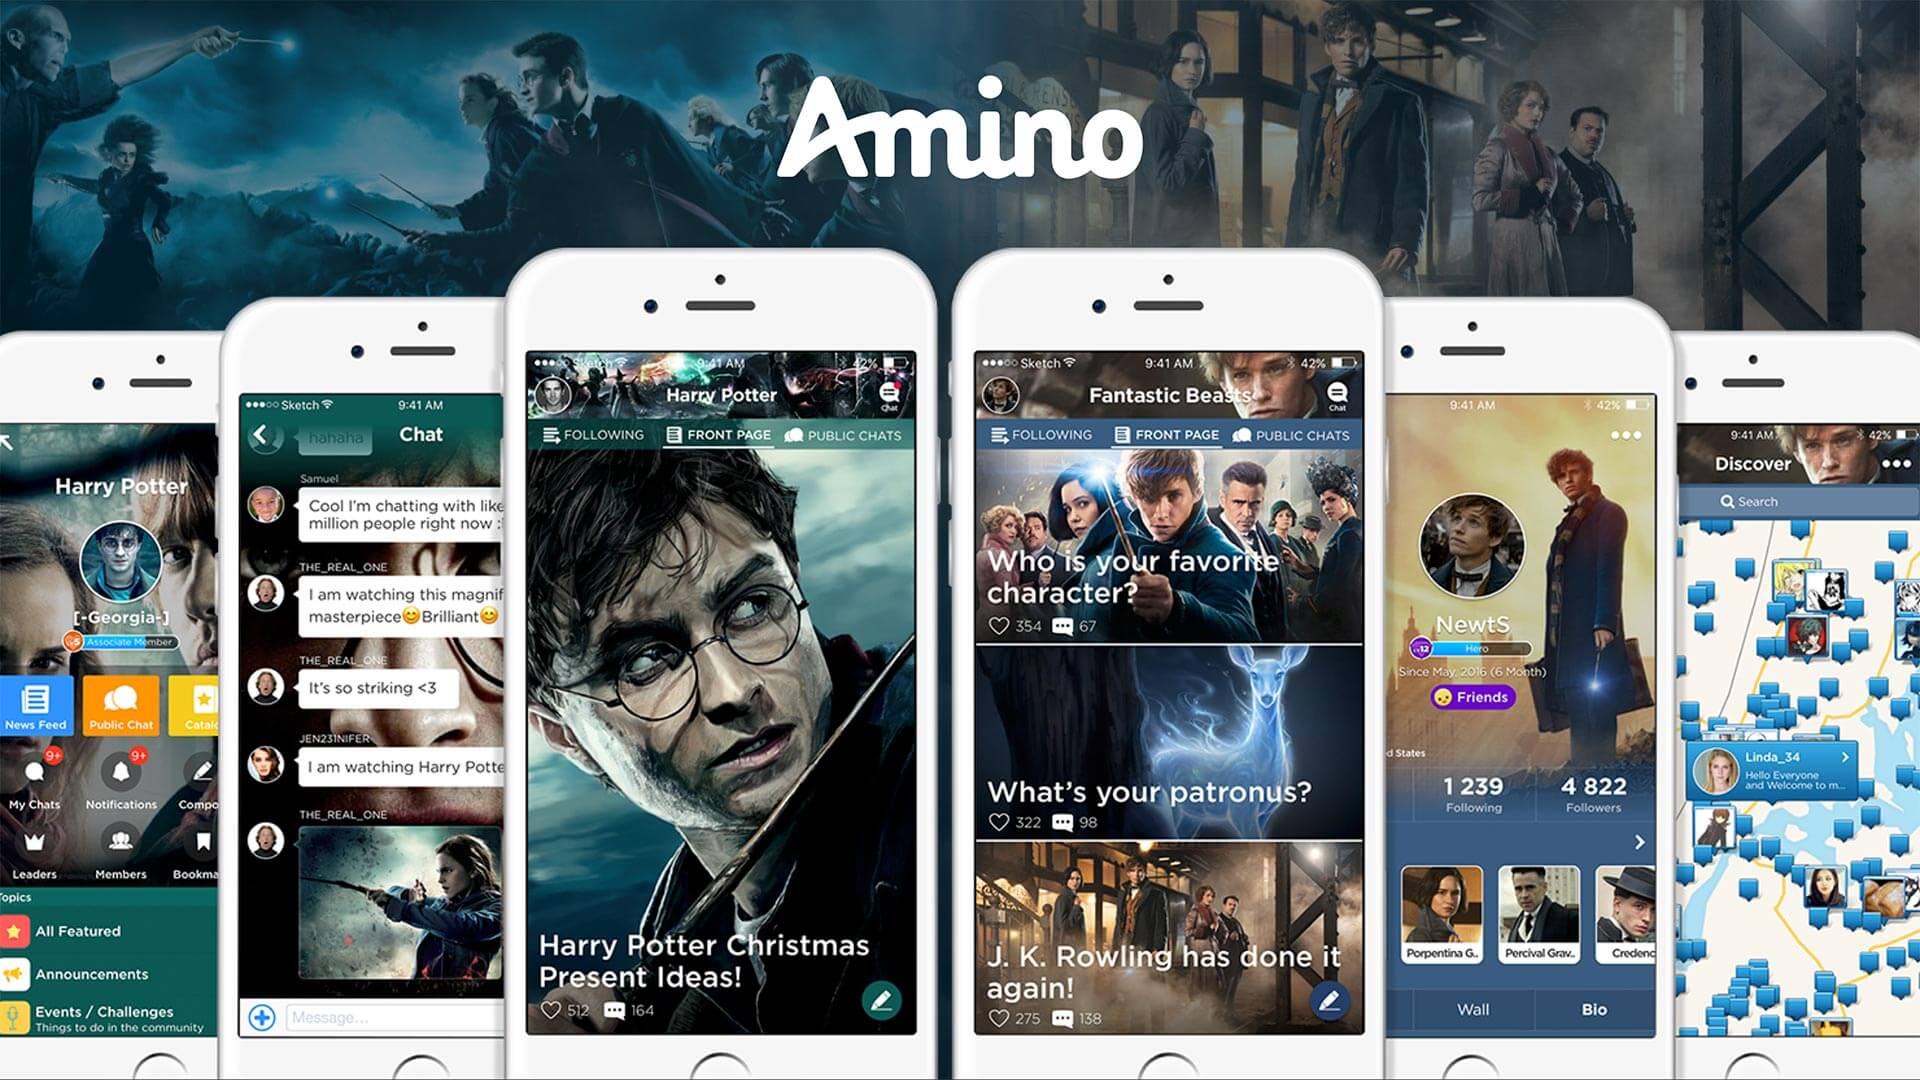 amino apps on pc